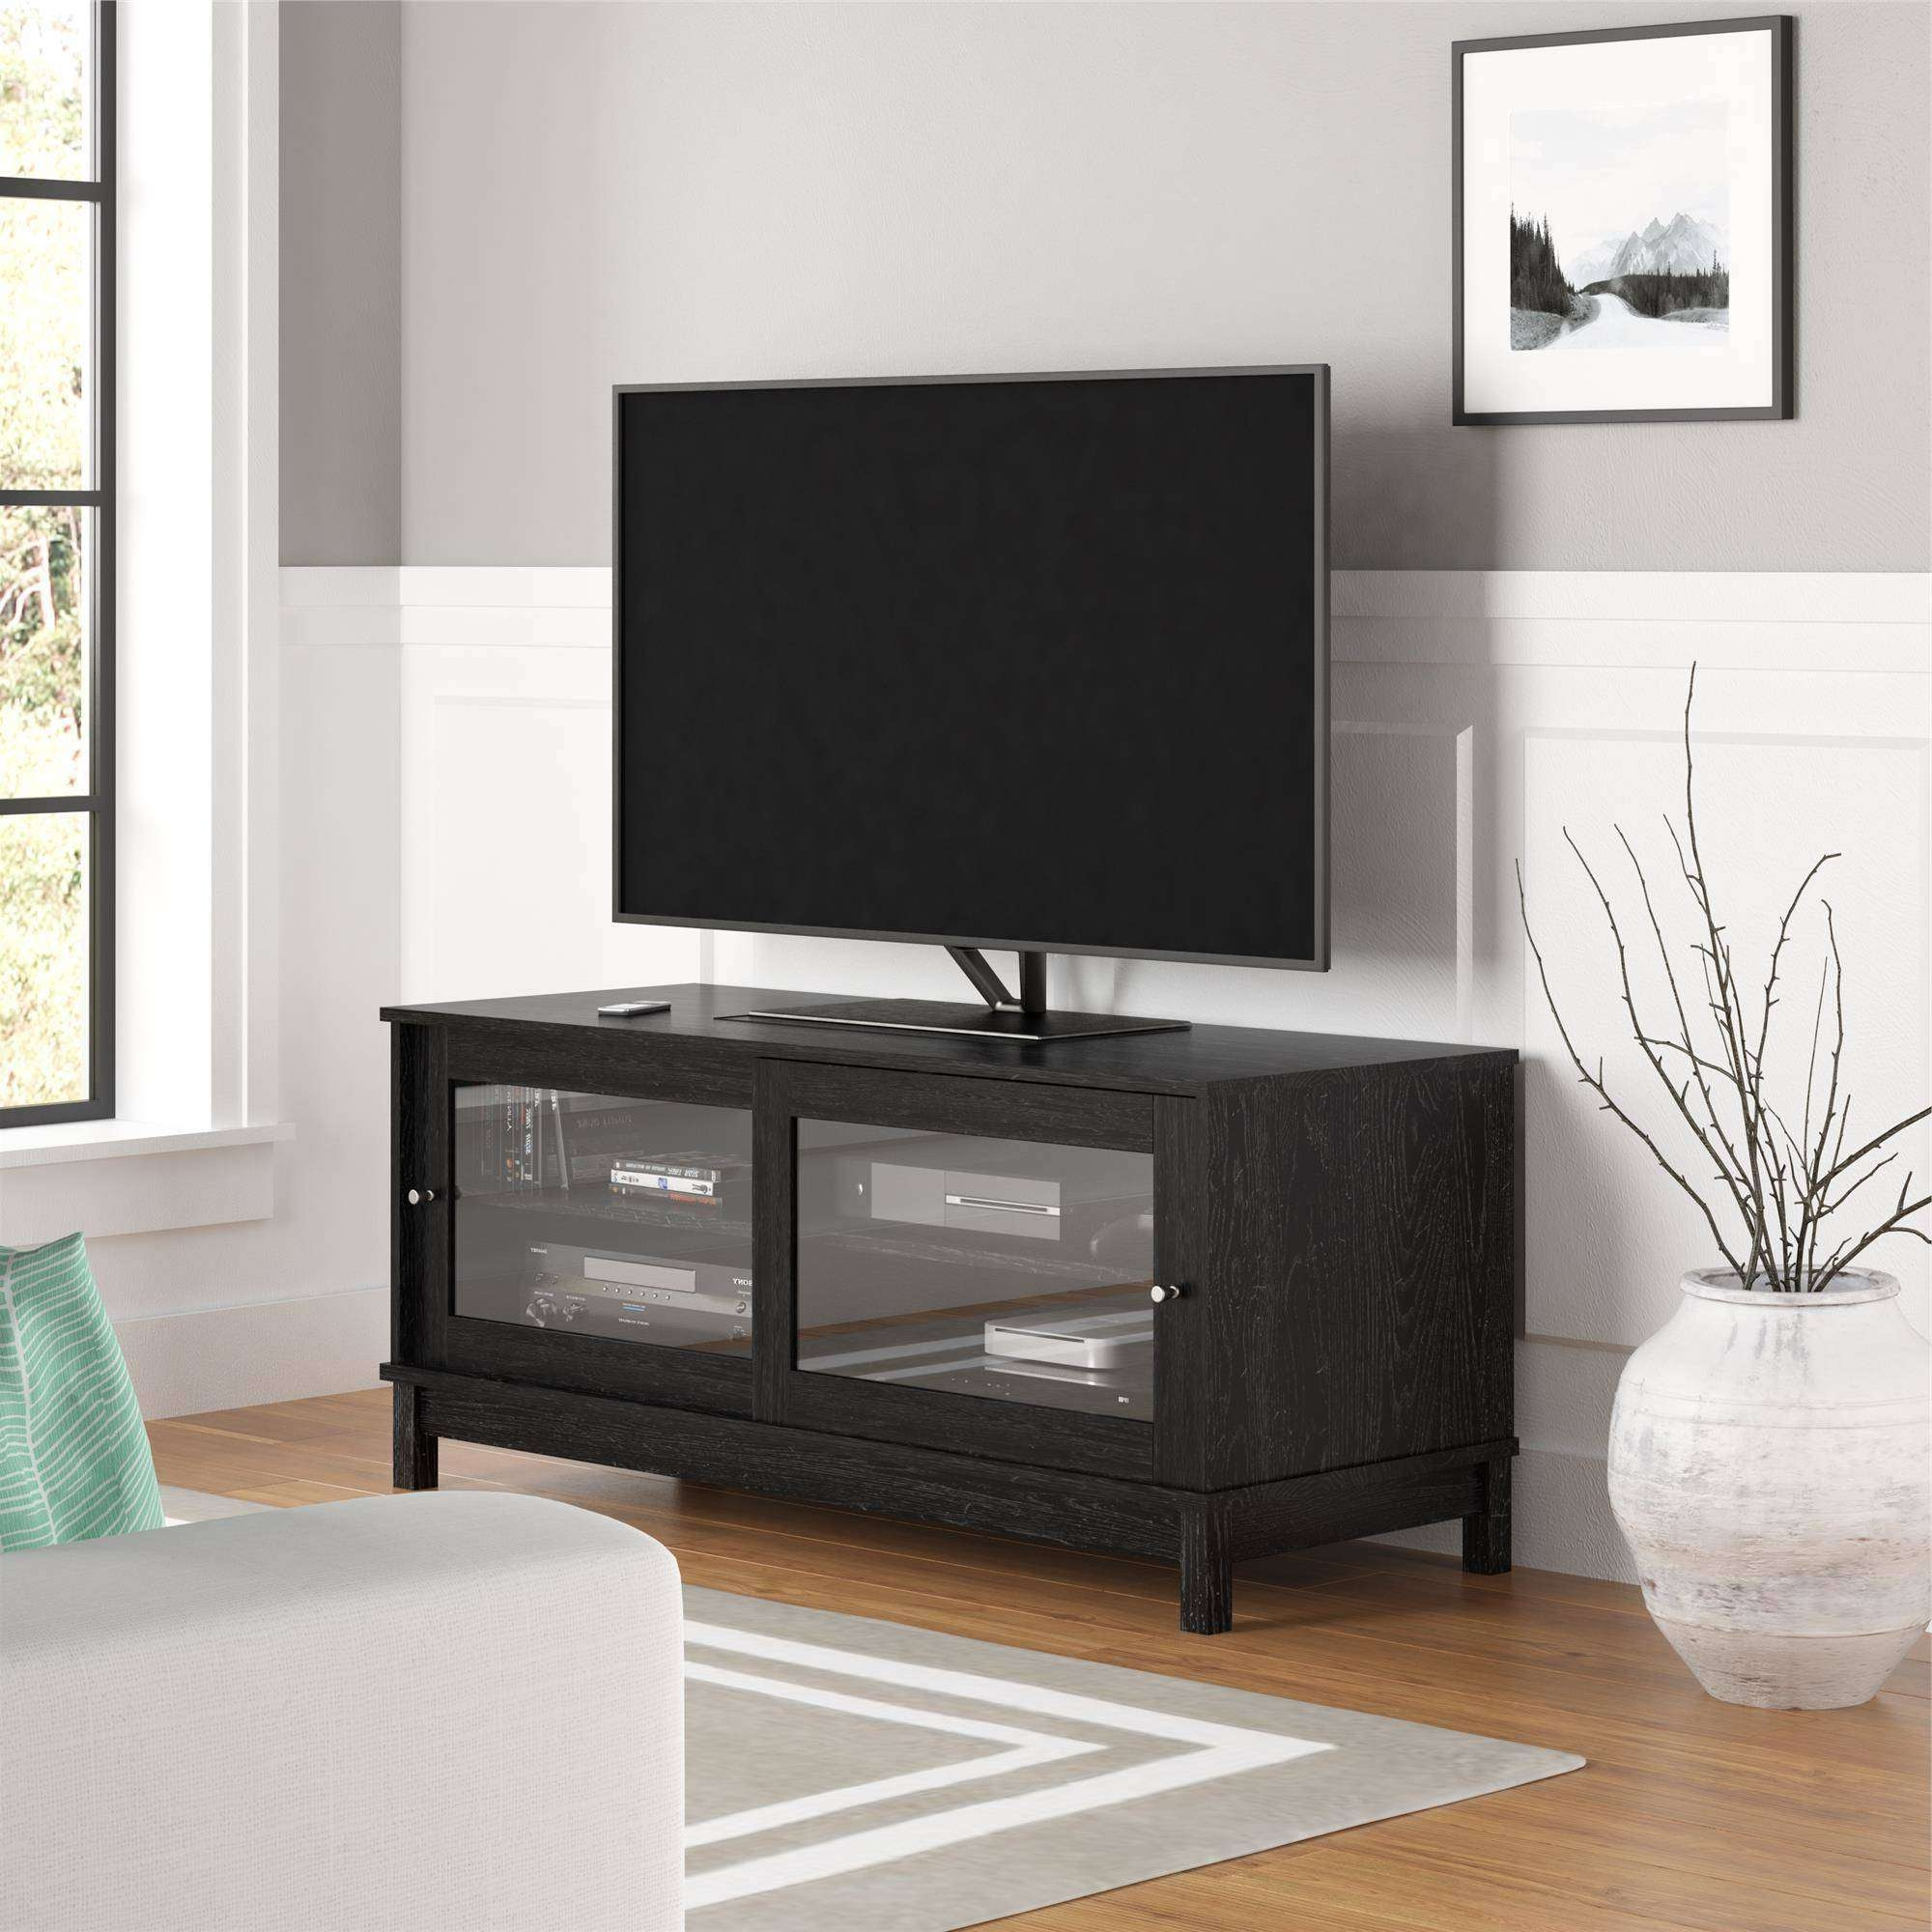 "Mainstays 55"" Tv Stand With Sliding Glass Doors, Black Ebony Ash Intended For Tv Stands For 55 Inch Tv (View 7 of 15)"